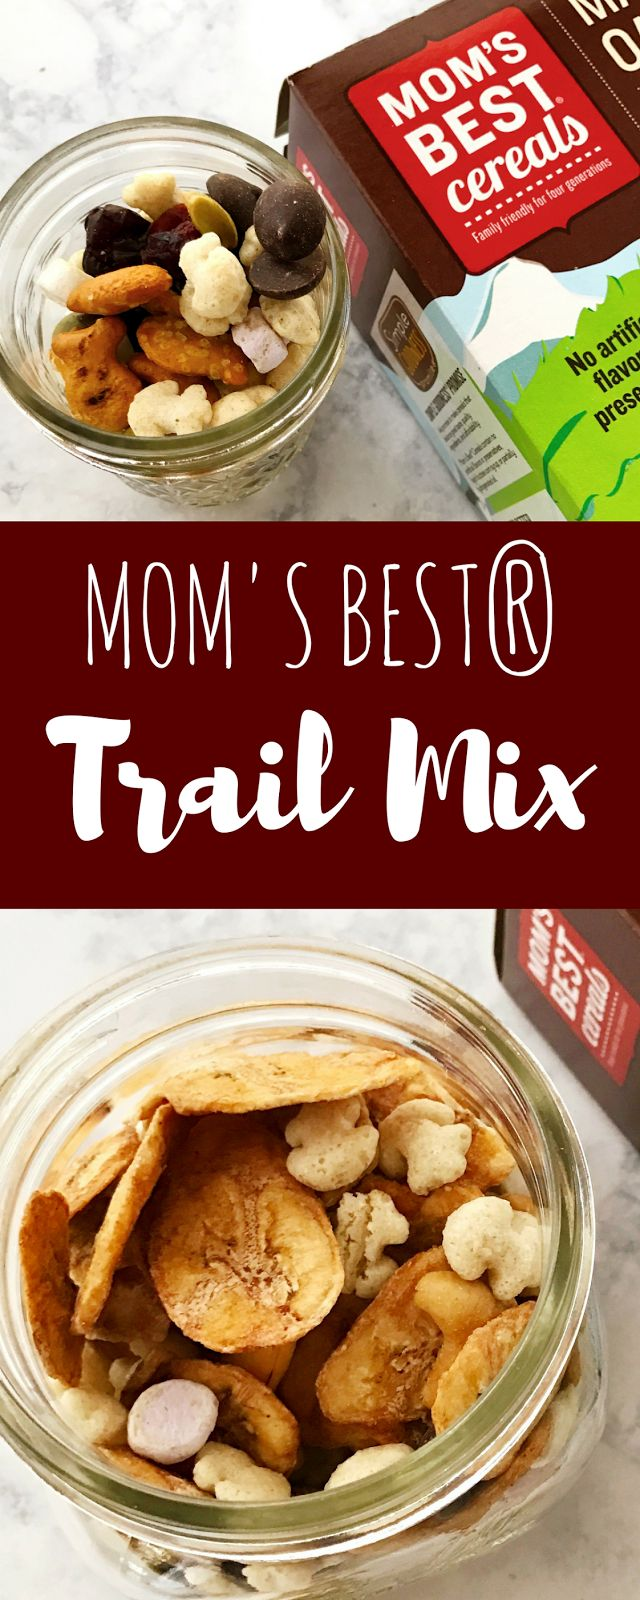 Easy Snack for New Year; Healthy Snacks; Trail Mix DIY; Kids Trail Mix; Banana Crunch Trail Mix; How to Trail Mix; Mom's Best Cereal